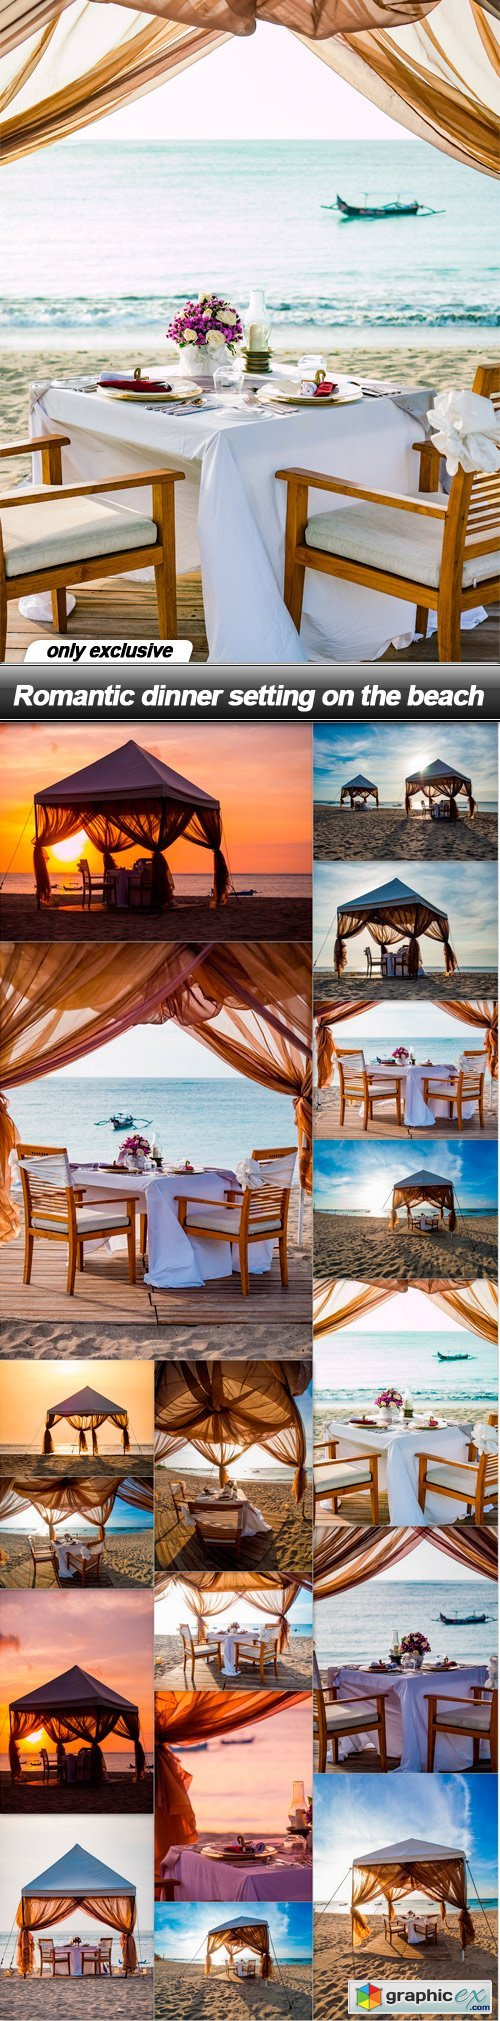 Romantic dinner setting on the beach - 17 UHQ JPEG